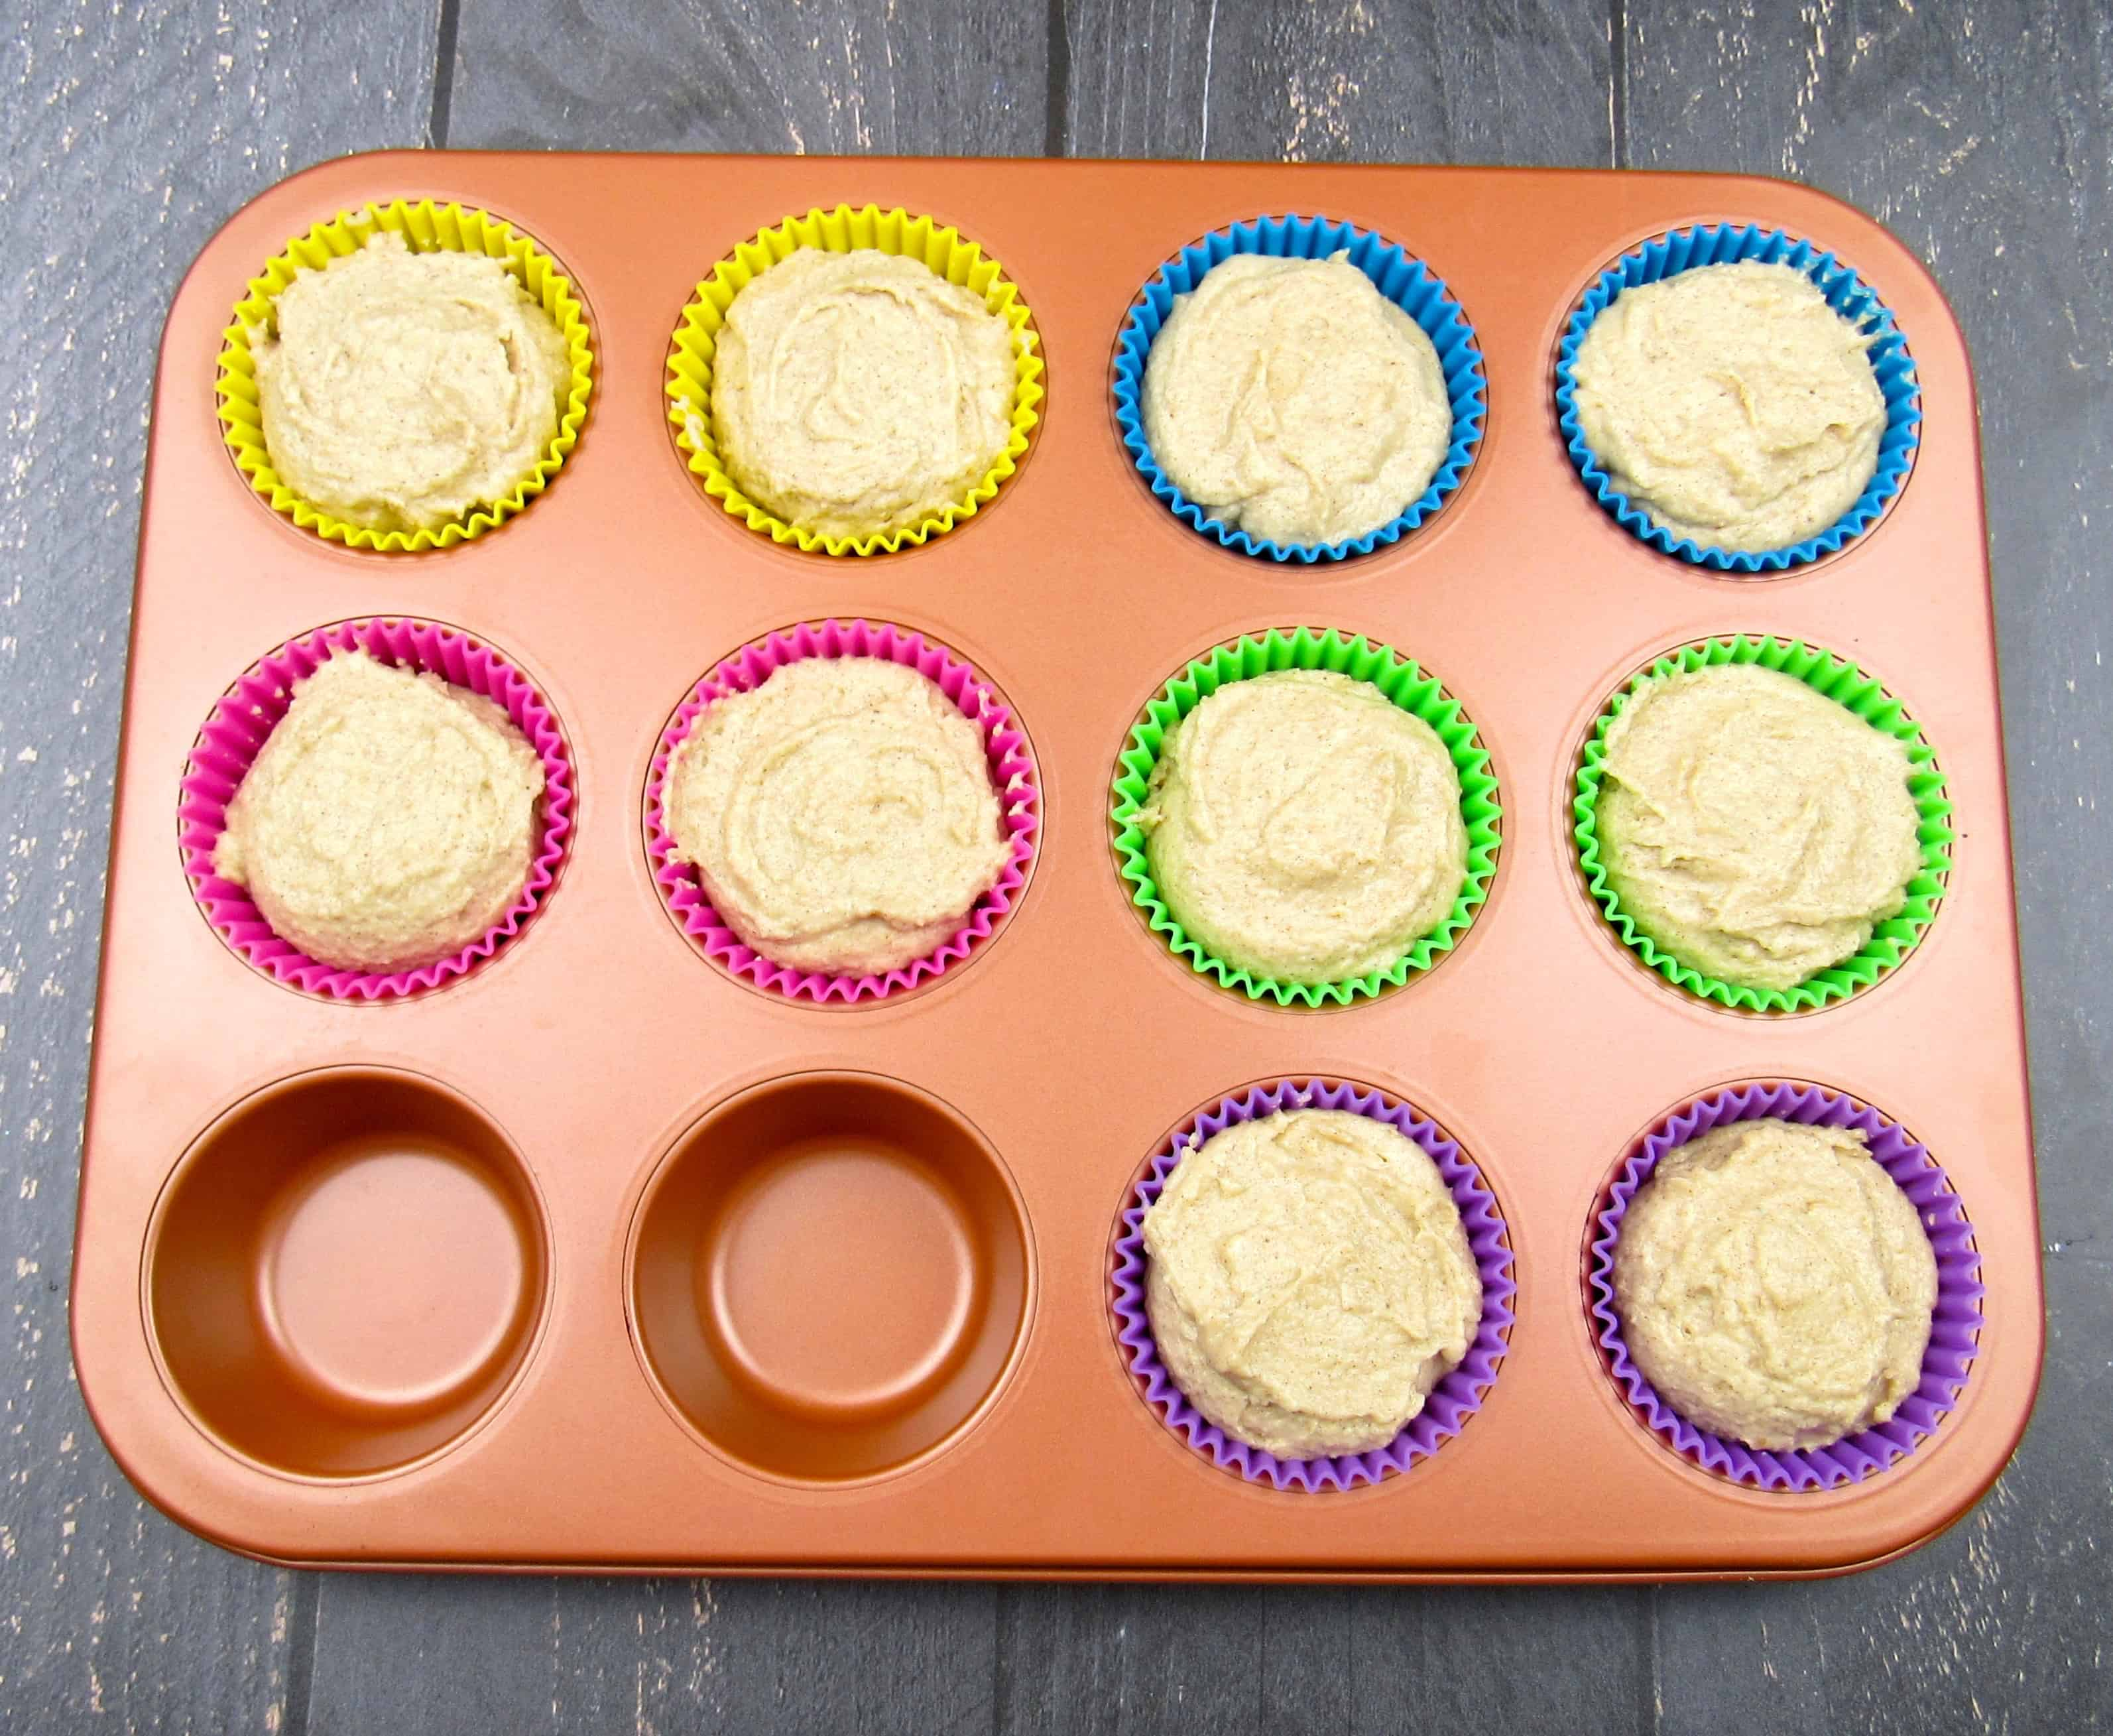 snickerdoodle muffins batter in muffin liners unbaked